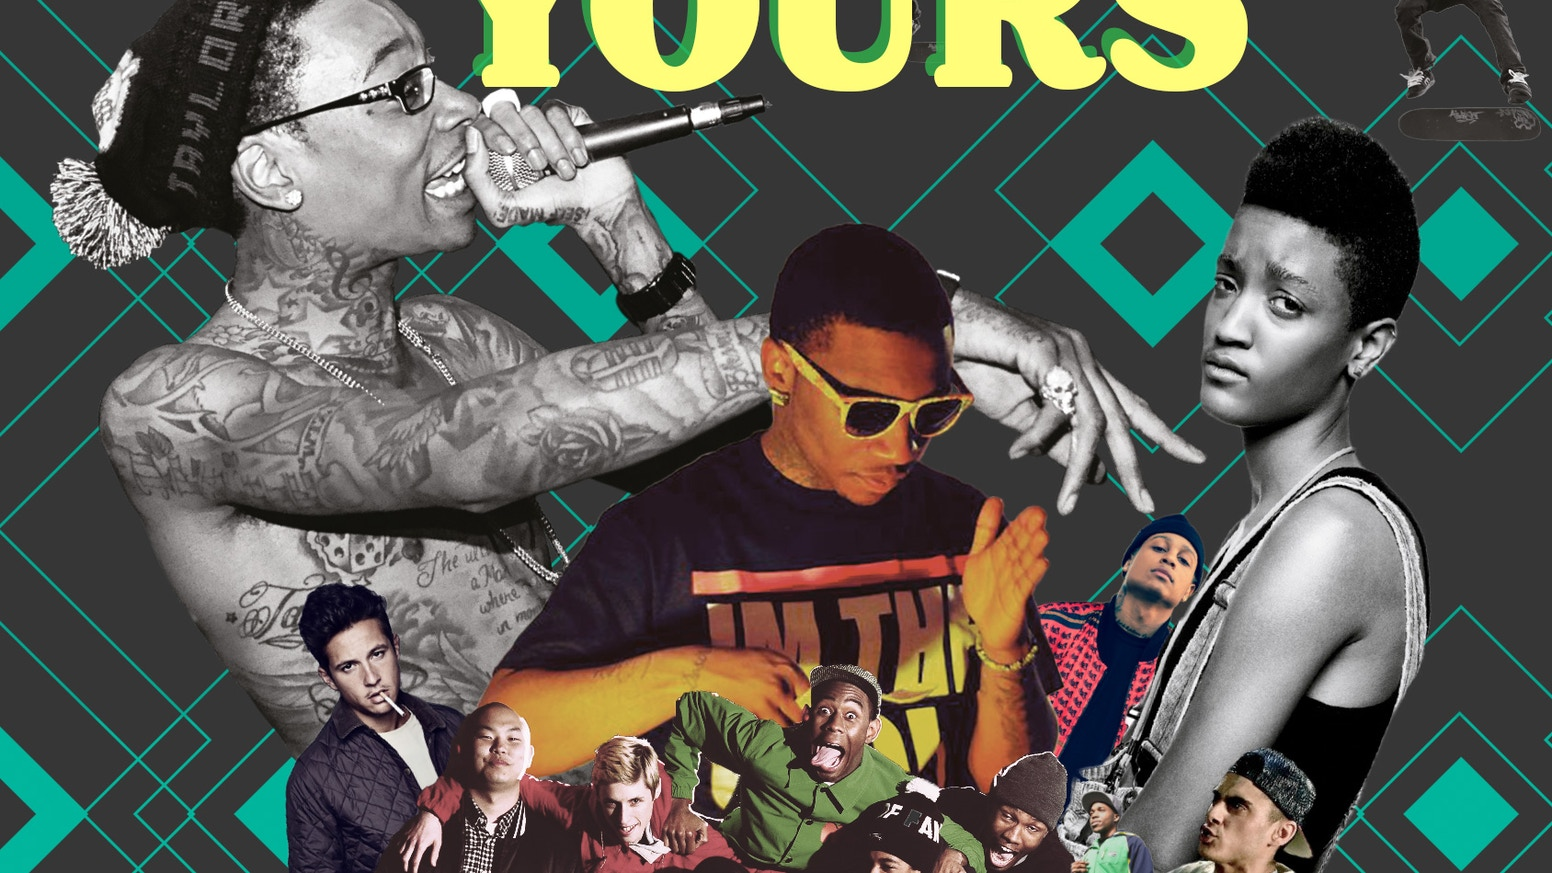 THE WORLD IS YOURS IS THE STORY OF HOW HIP-HOP'S USE OF THE INTERNET REVOLUTIONIZED THE MUSIC INDUSTRY